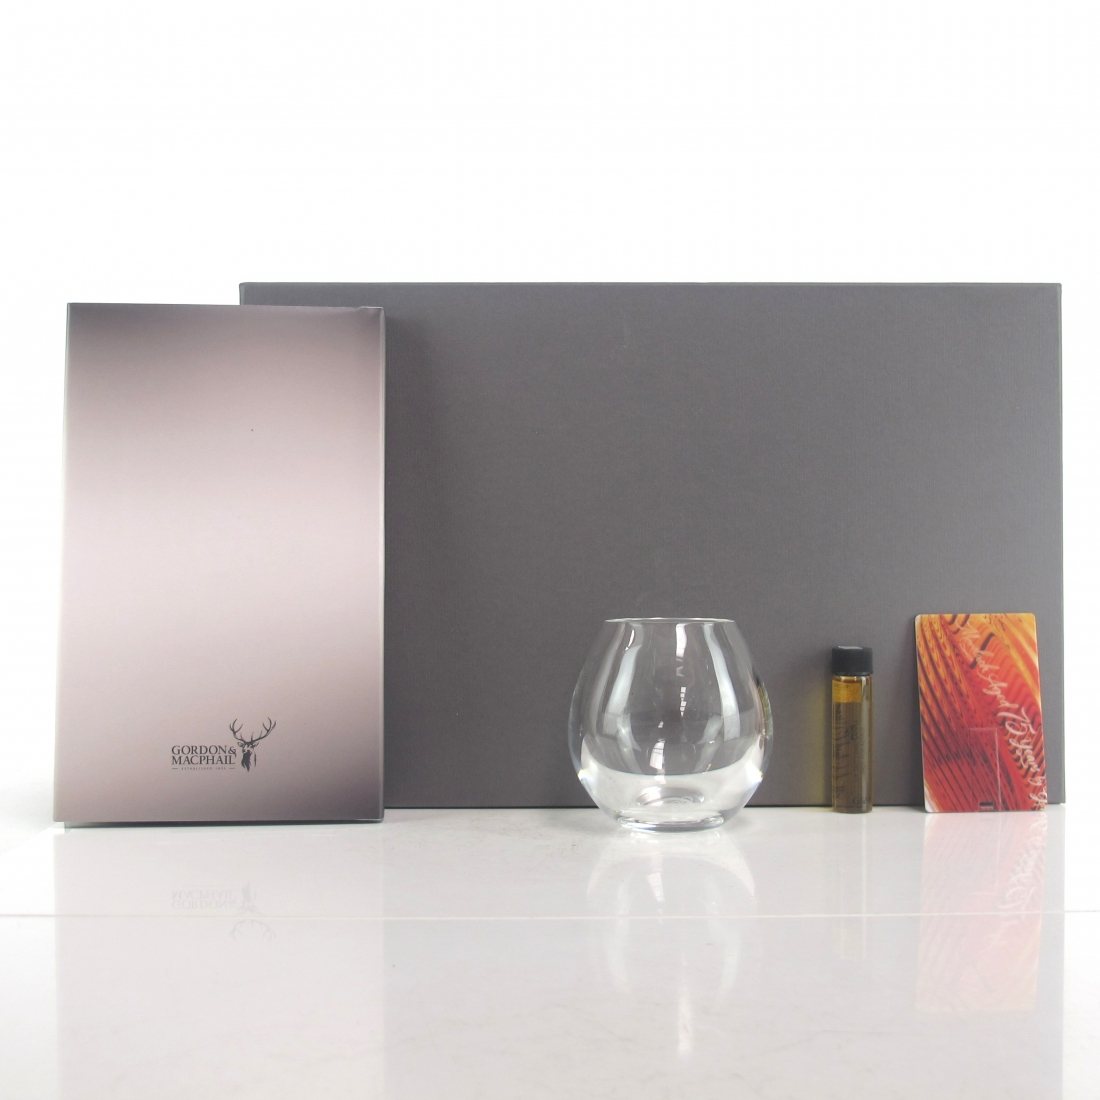 Mortlach 75 Year Old Gordon and MacPhail 1cl Sample Gift Set